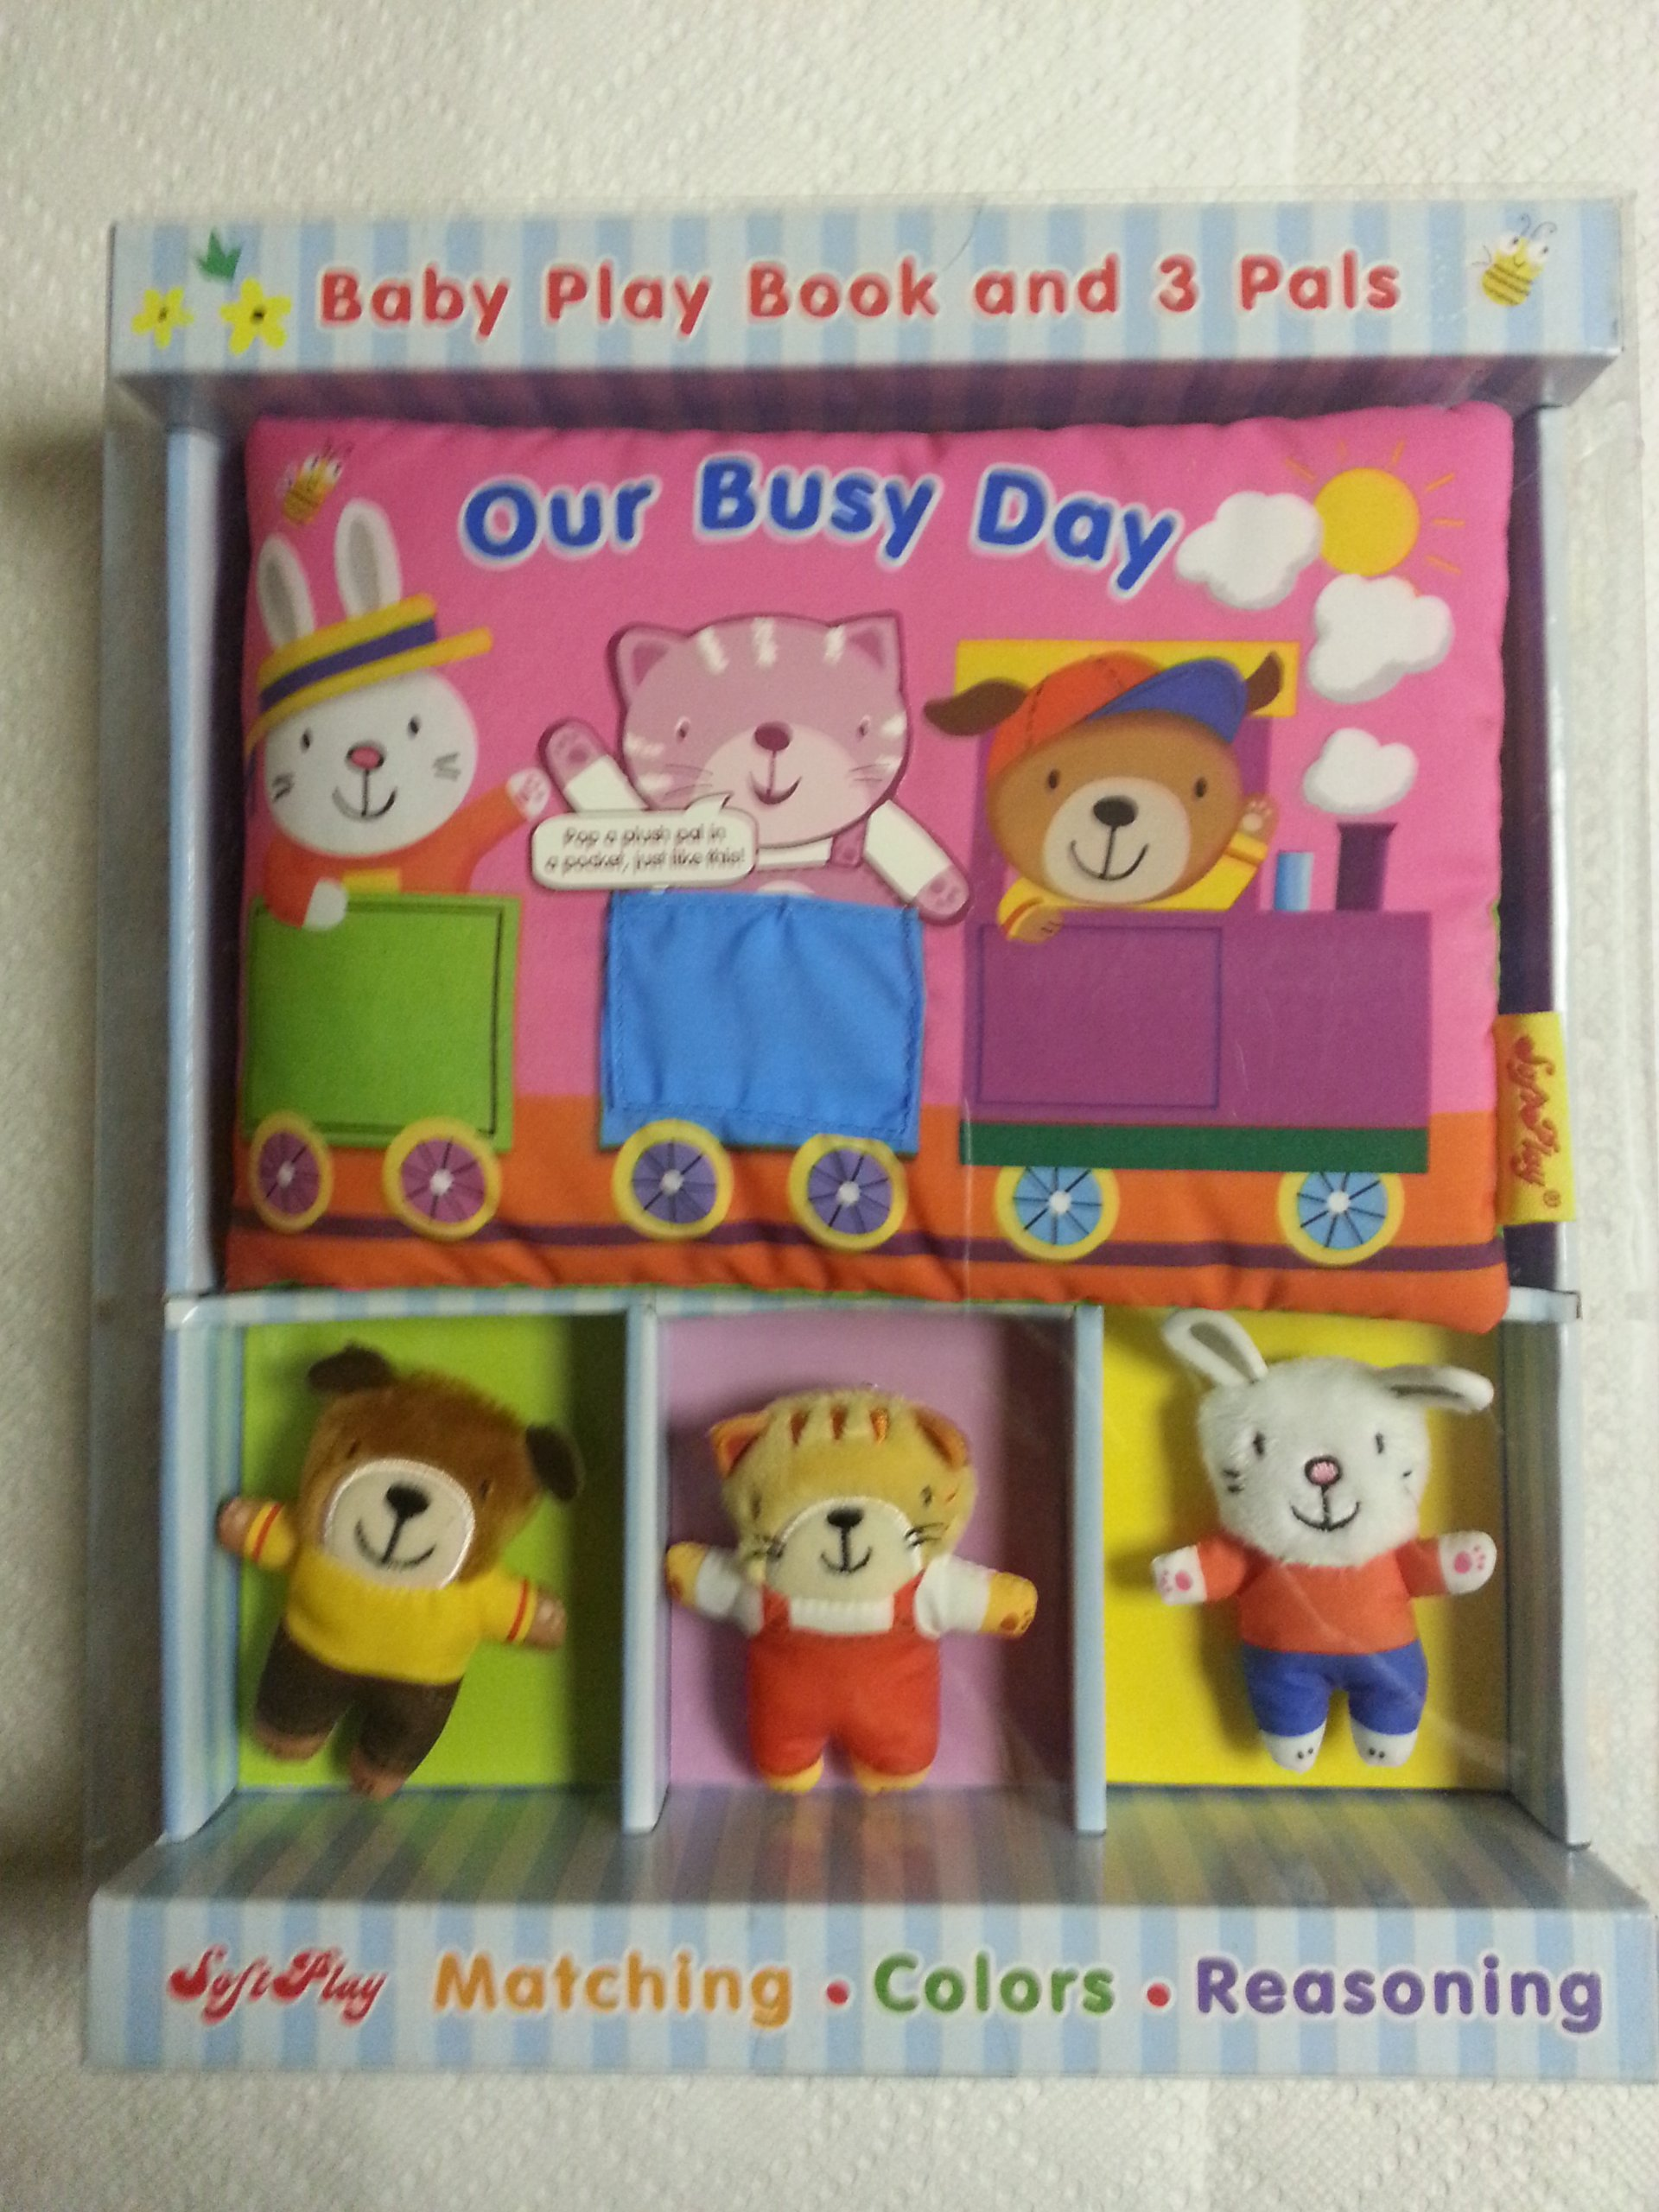 Softplay Our Busy Day Baby Play Book and 3 Pals